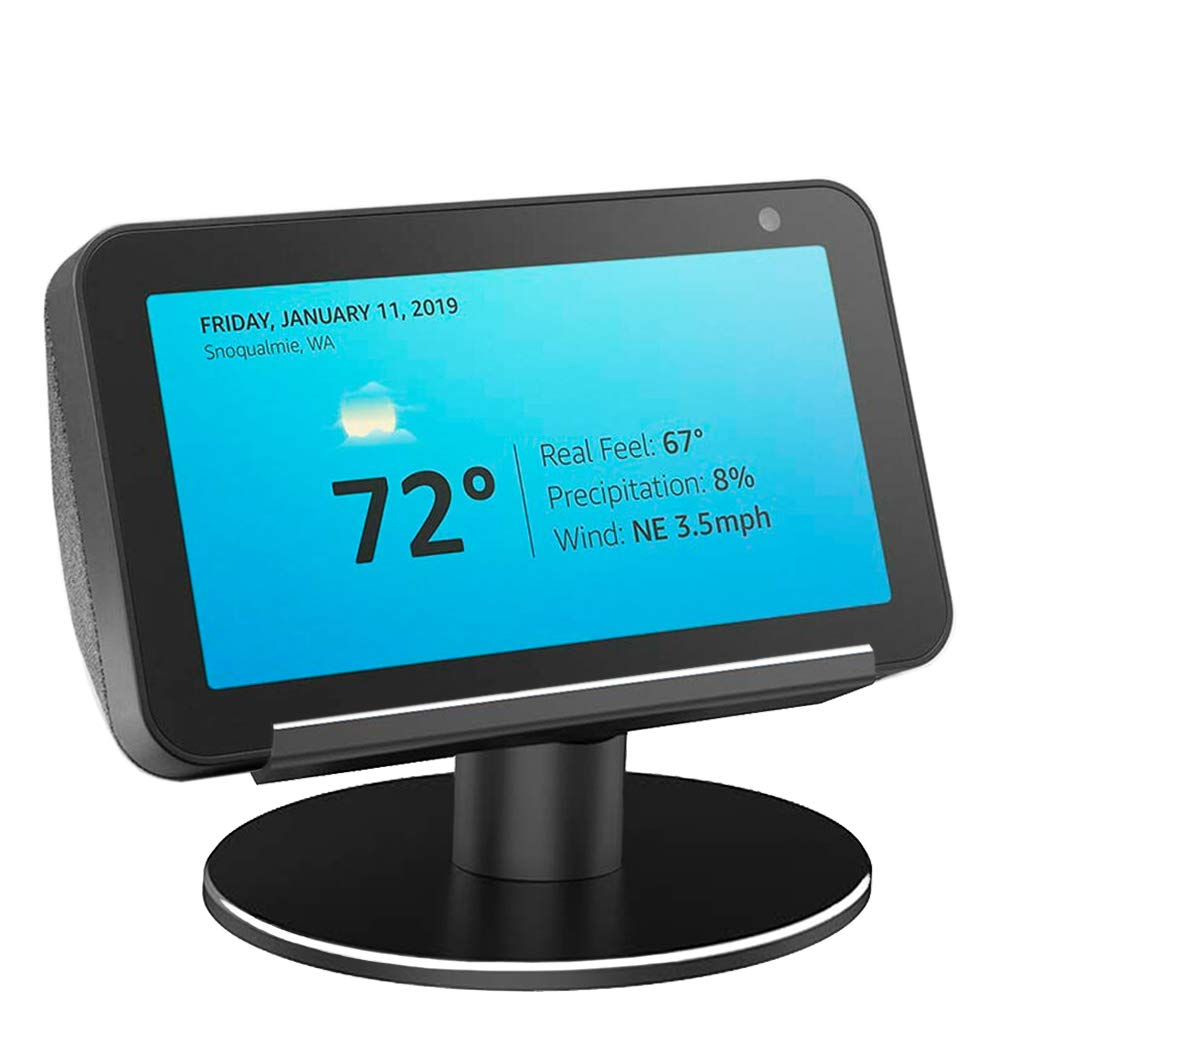 AutoSonic Stand for Echo Show 5, Adjustable Stand Mount Accessories Compatible with Amazon Echo Show 5, Fully Aluminum Build,360 Degree Swivel, Tilt Function, Anti-Slip Base, 2019 Release by AutoSonic